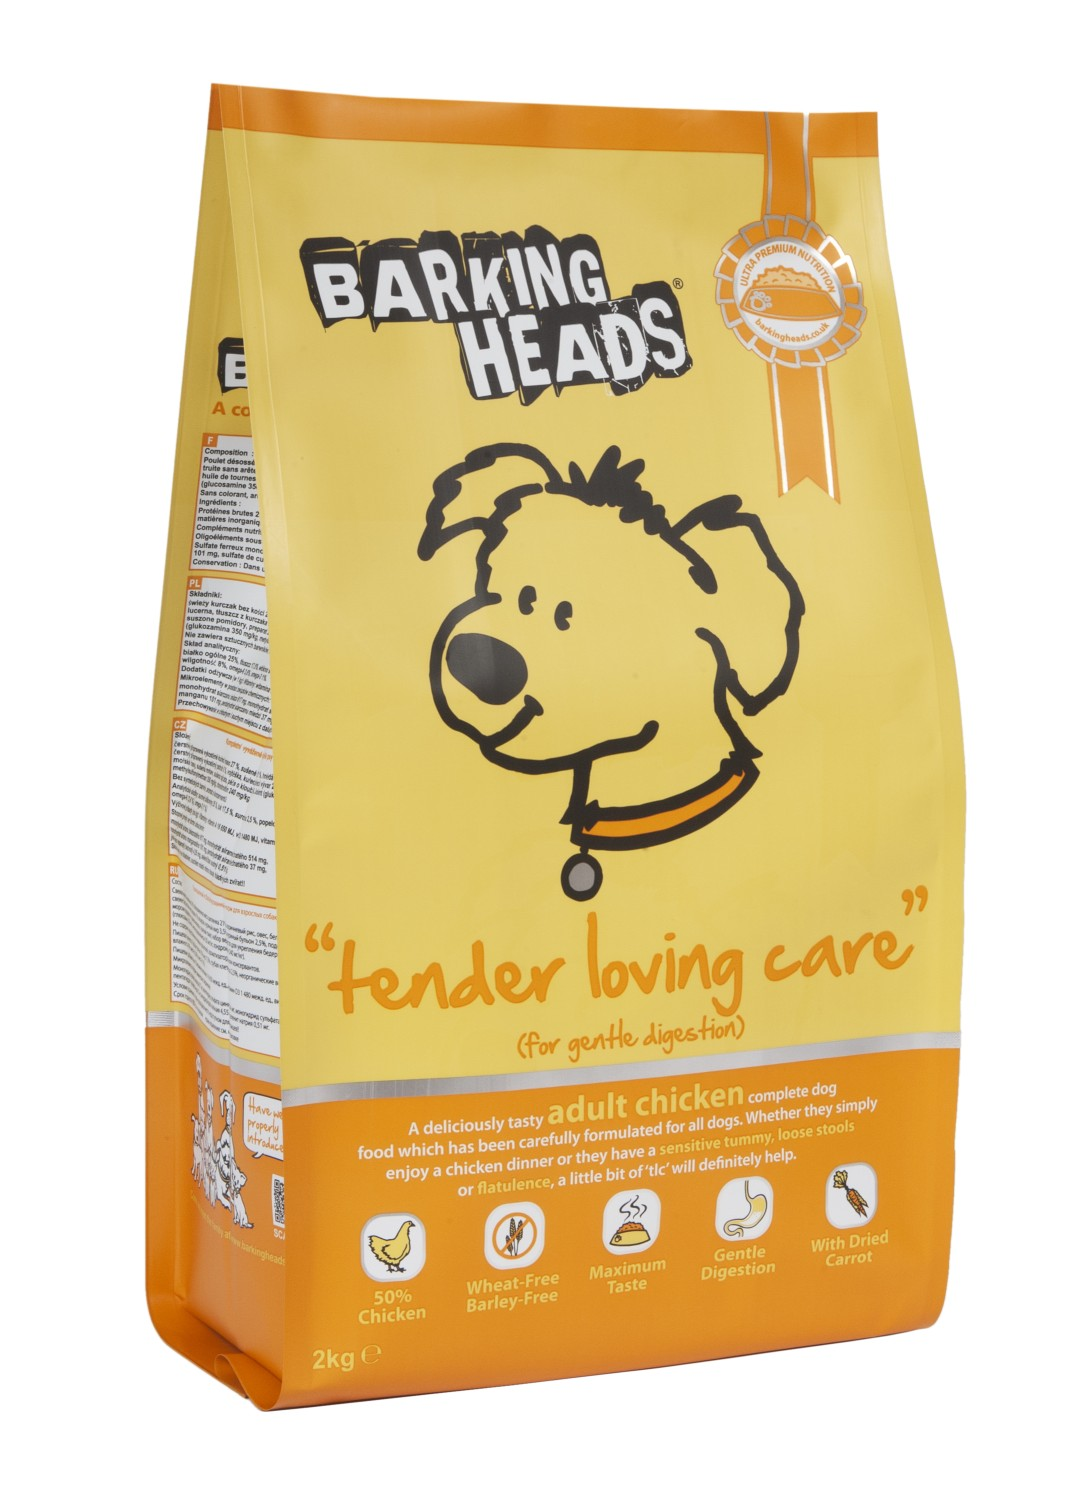 BARKING HEADS Tender Loving Care 2kg